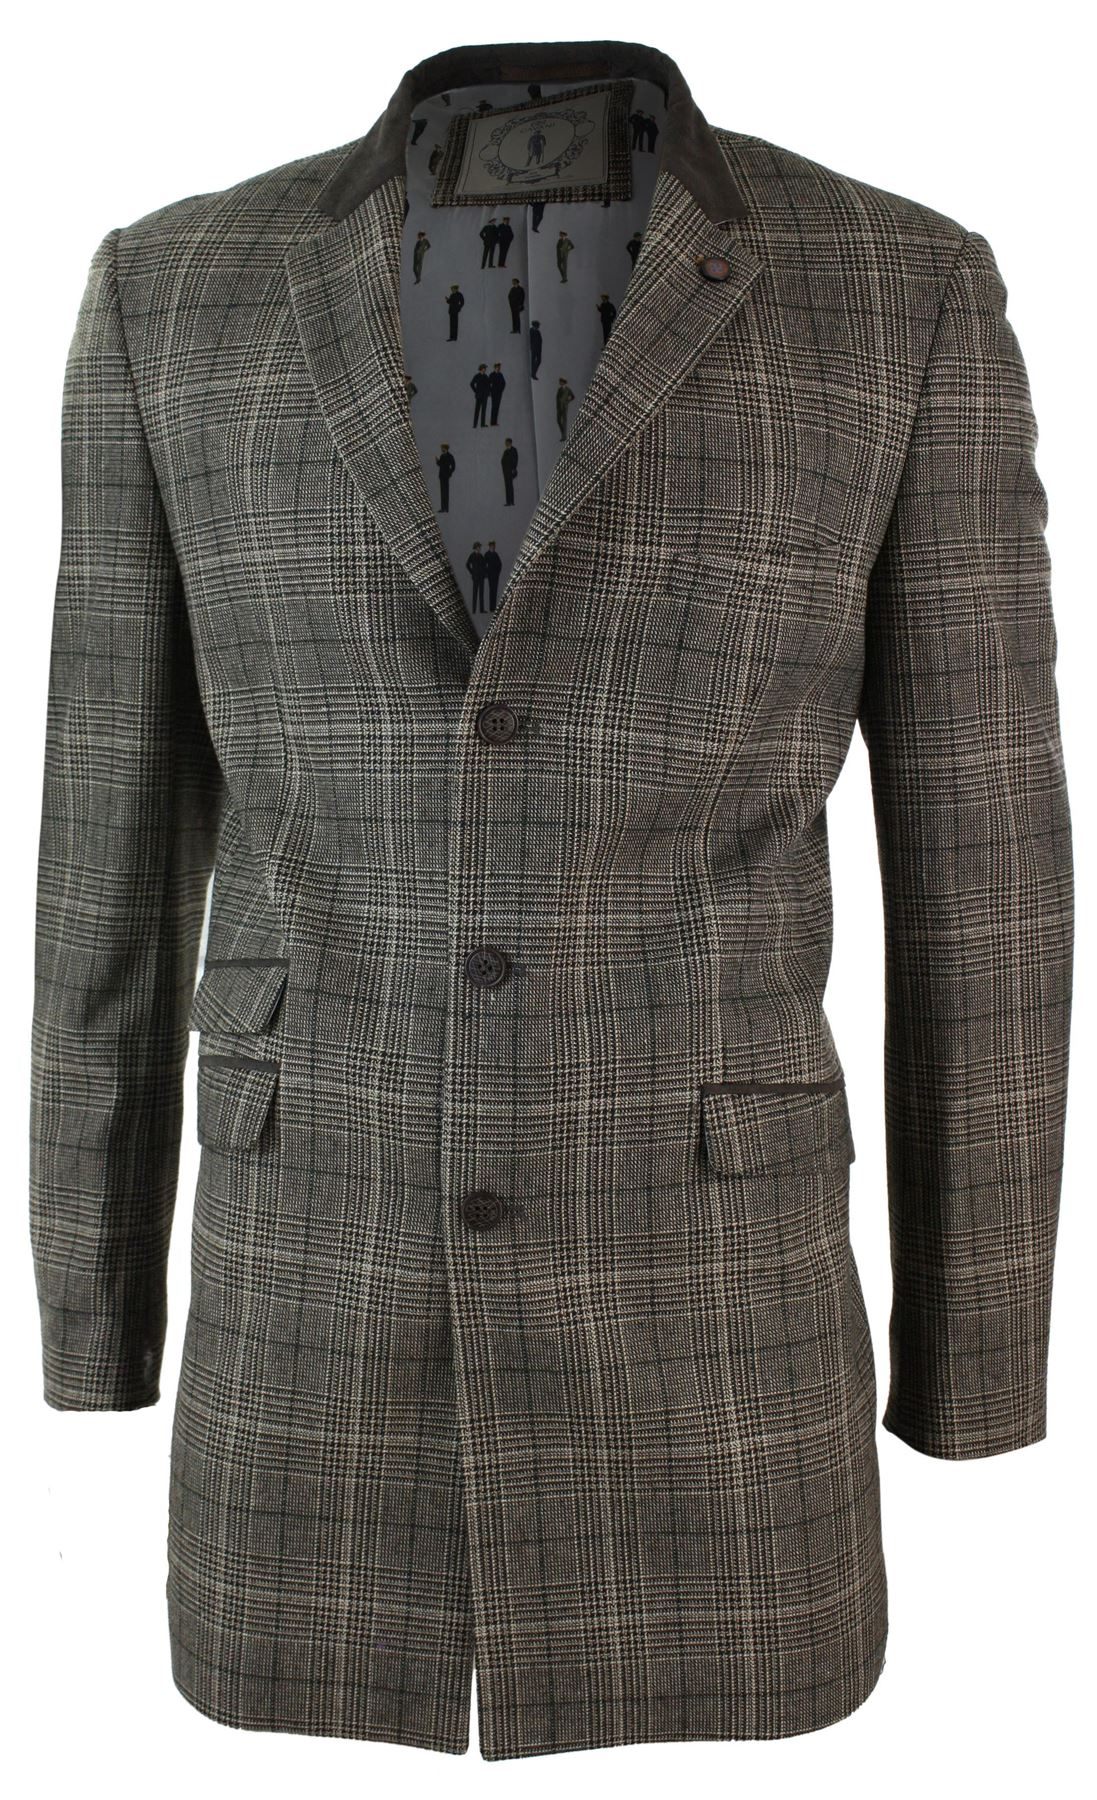 Check Wool Blend Overcoat is rated out of 5 by Rated 5 out of 5 by Suesids from Beautiful coat My husband always wanted a coat like this and was over the moon with this coat. It was fabulous quality and an incredible price in the sale.